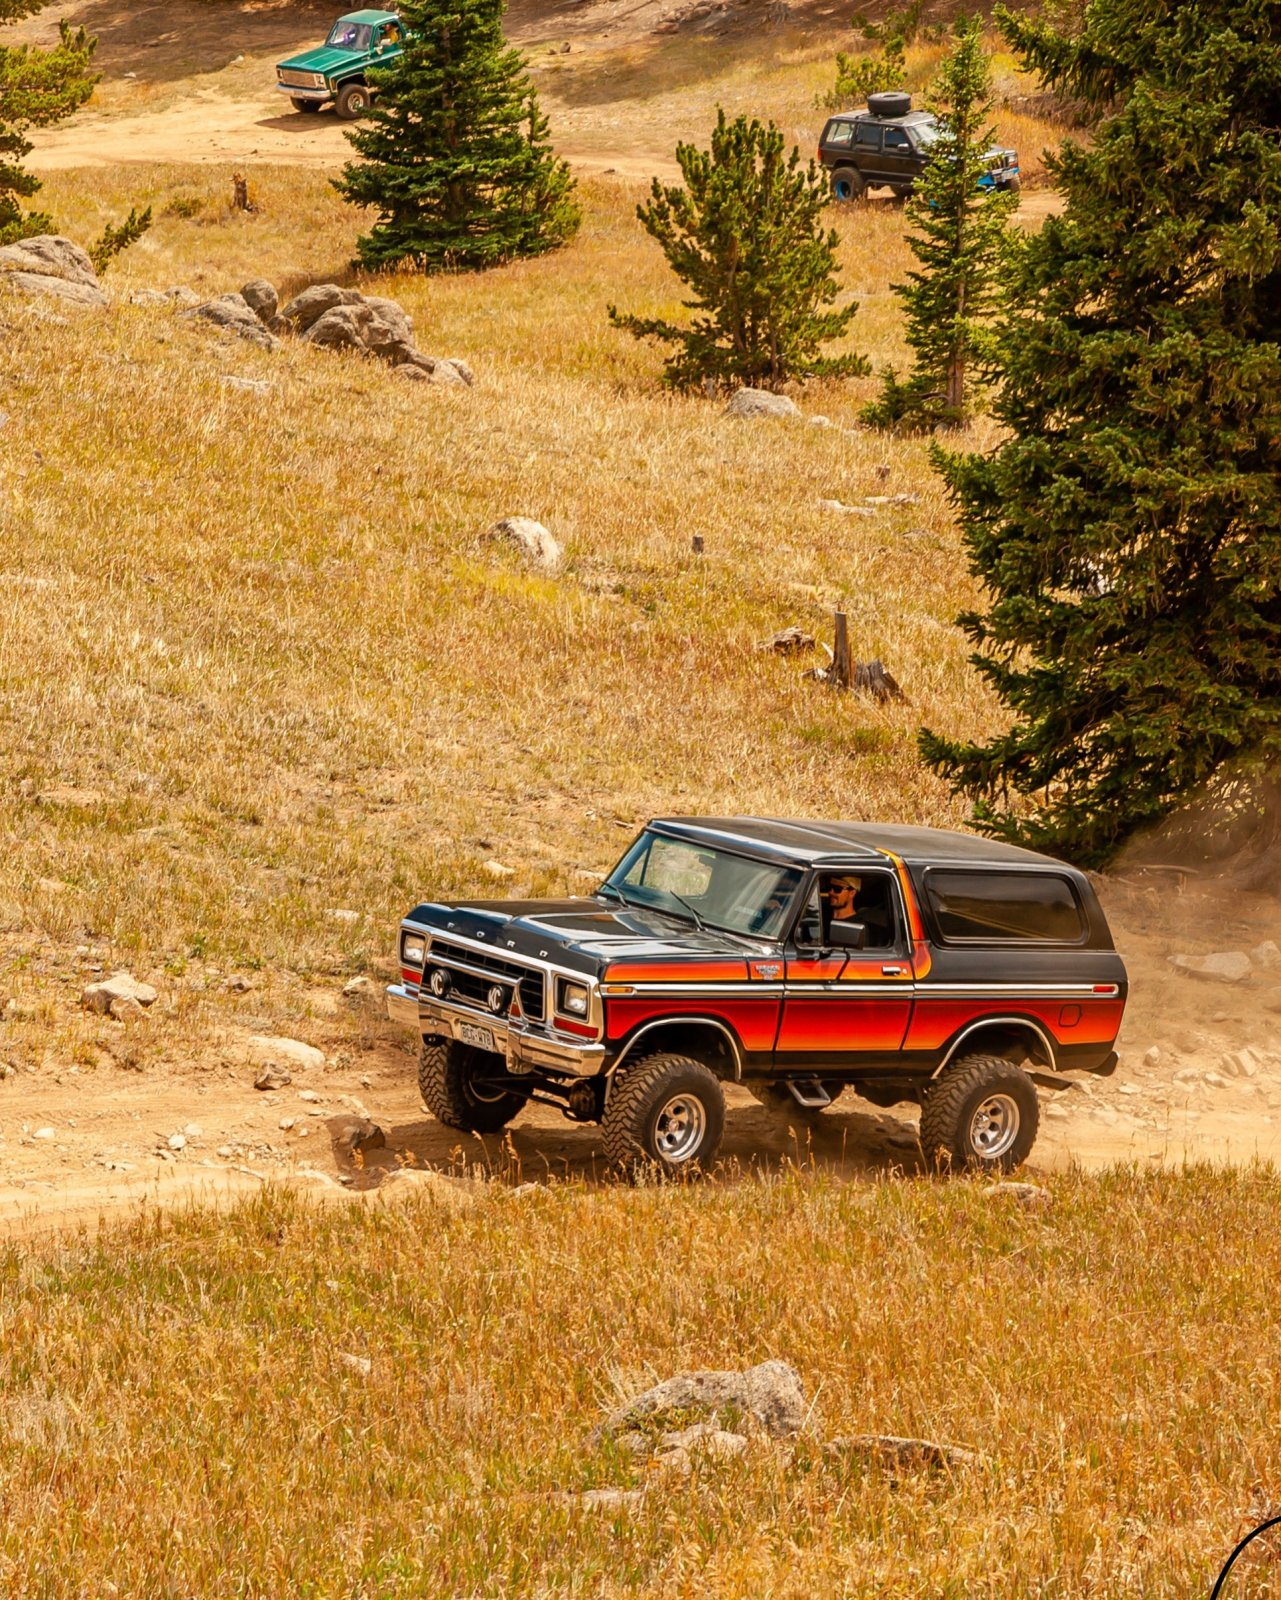 1979 Ford Bronco Ranger XLT - For Sale 6.JPG